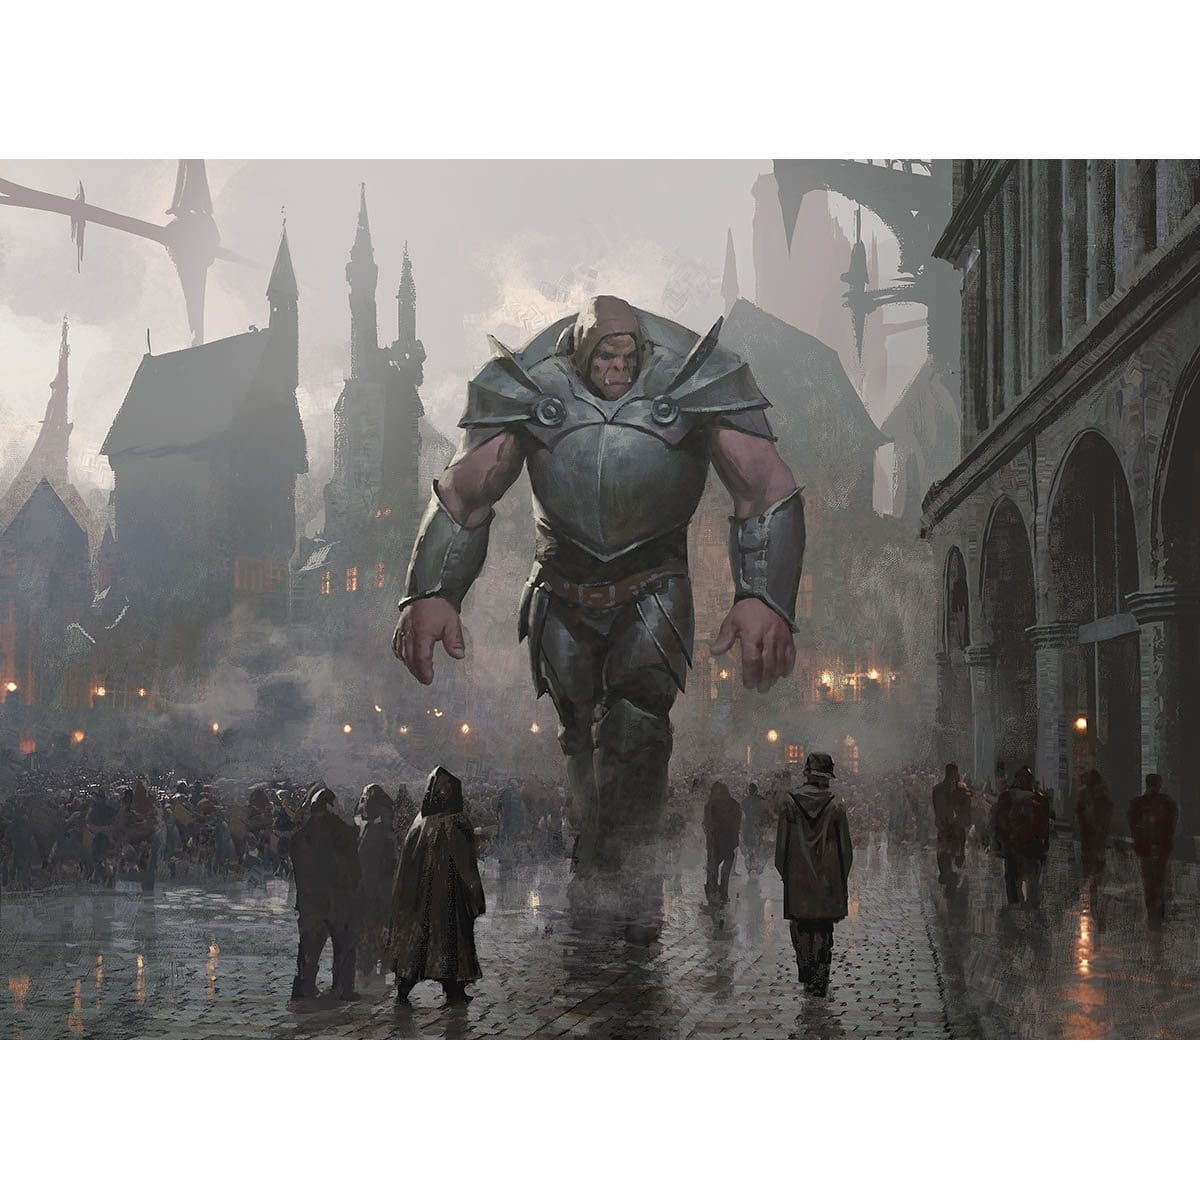 Watchful Giant Print - Print - Original Magic Art - Accessories for Magic the Gathering and other card games